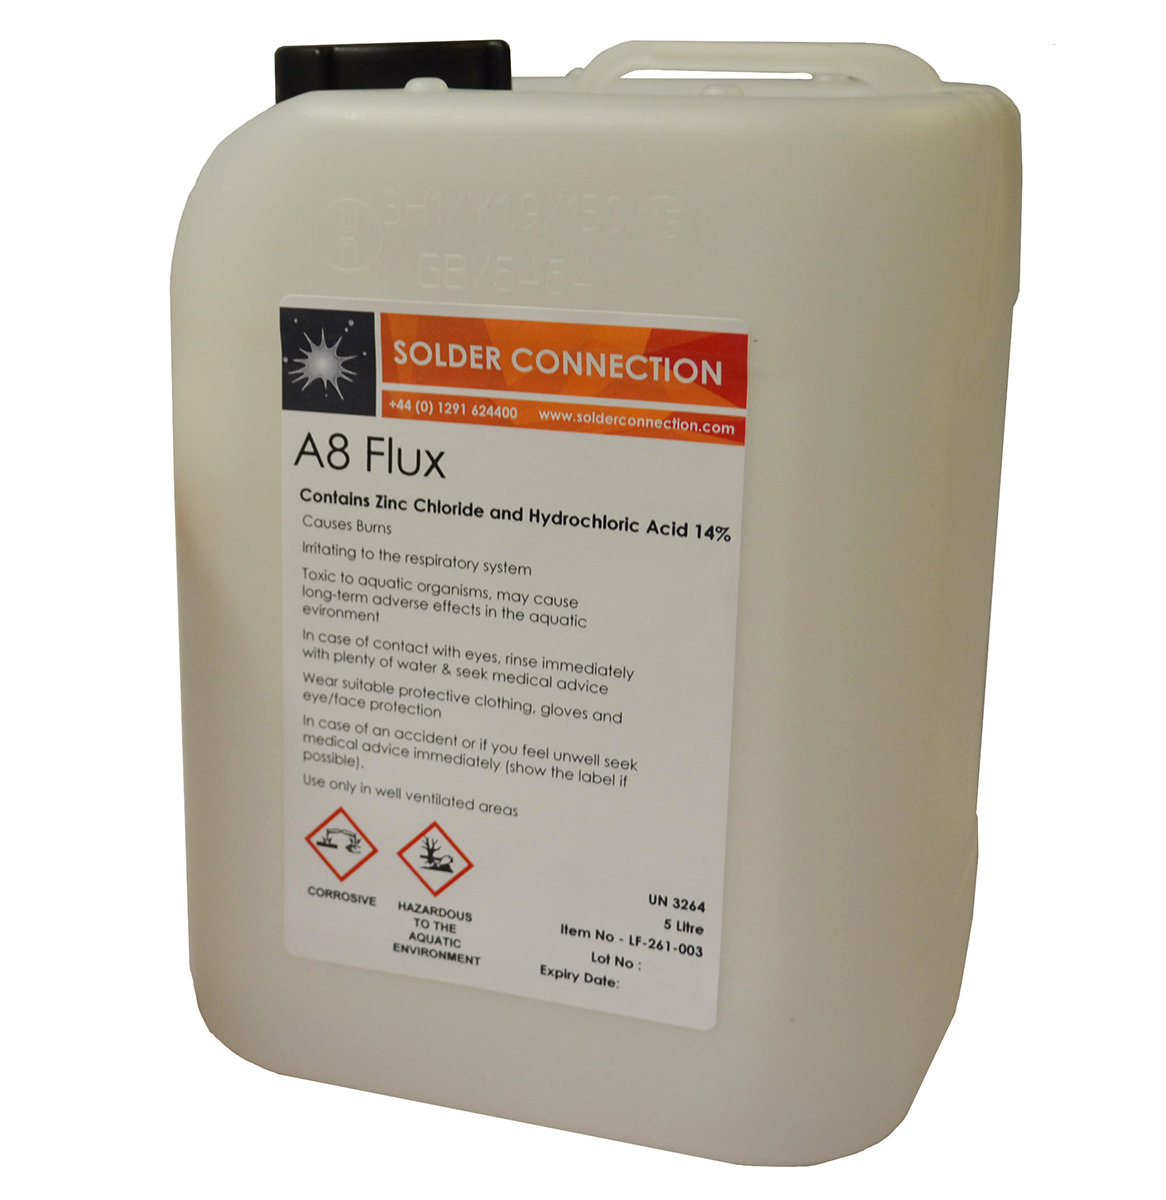 Fry A8 Stainless Steel Flux The Solder Connection